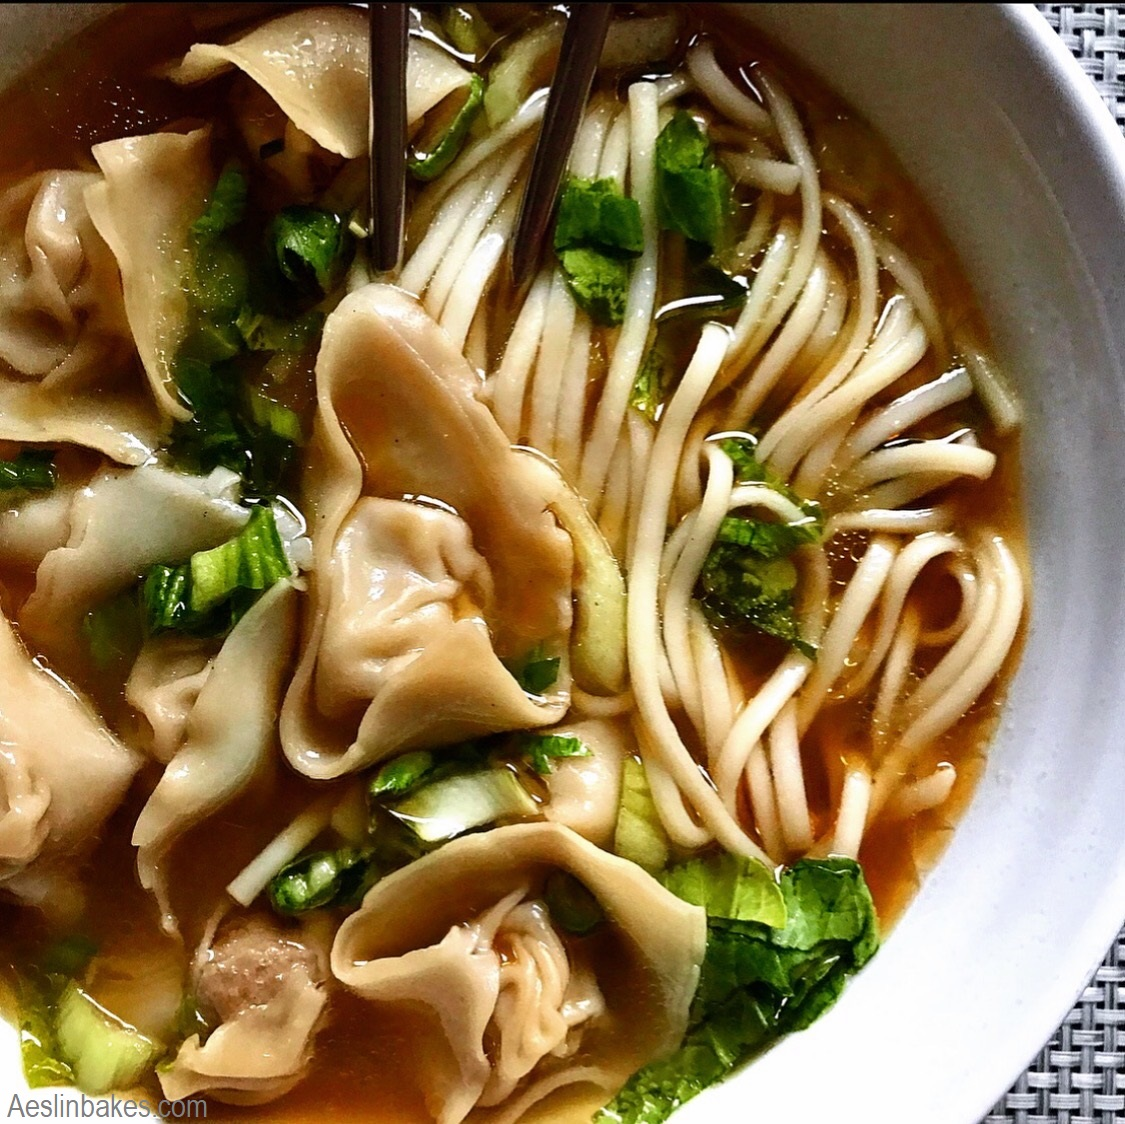 Wonton soup with noodles and bitter greens